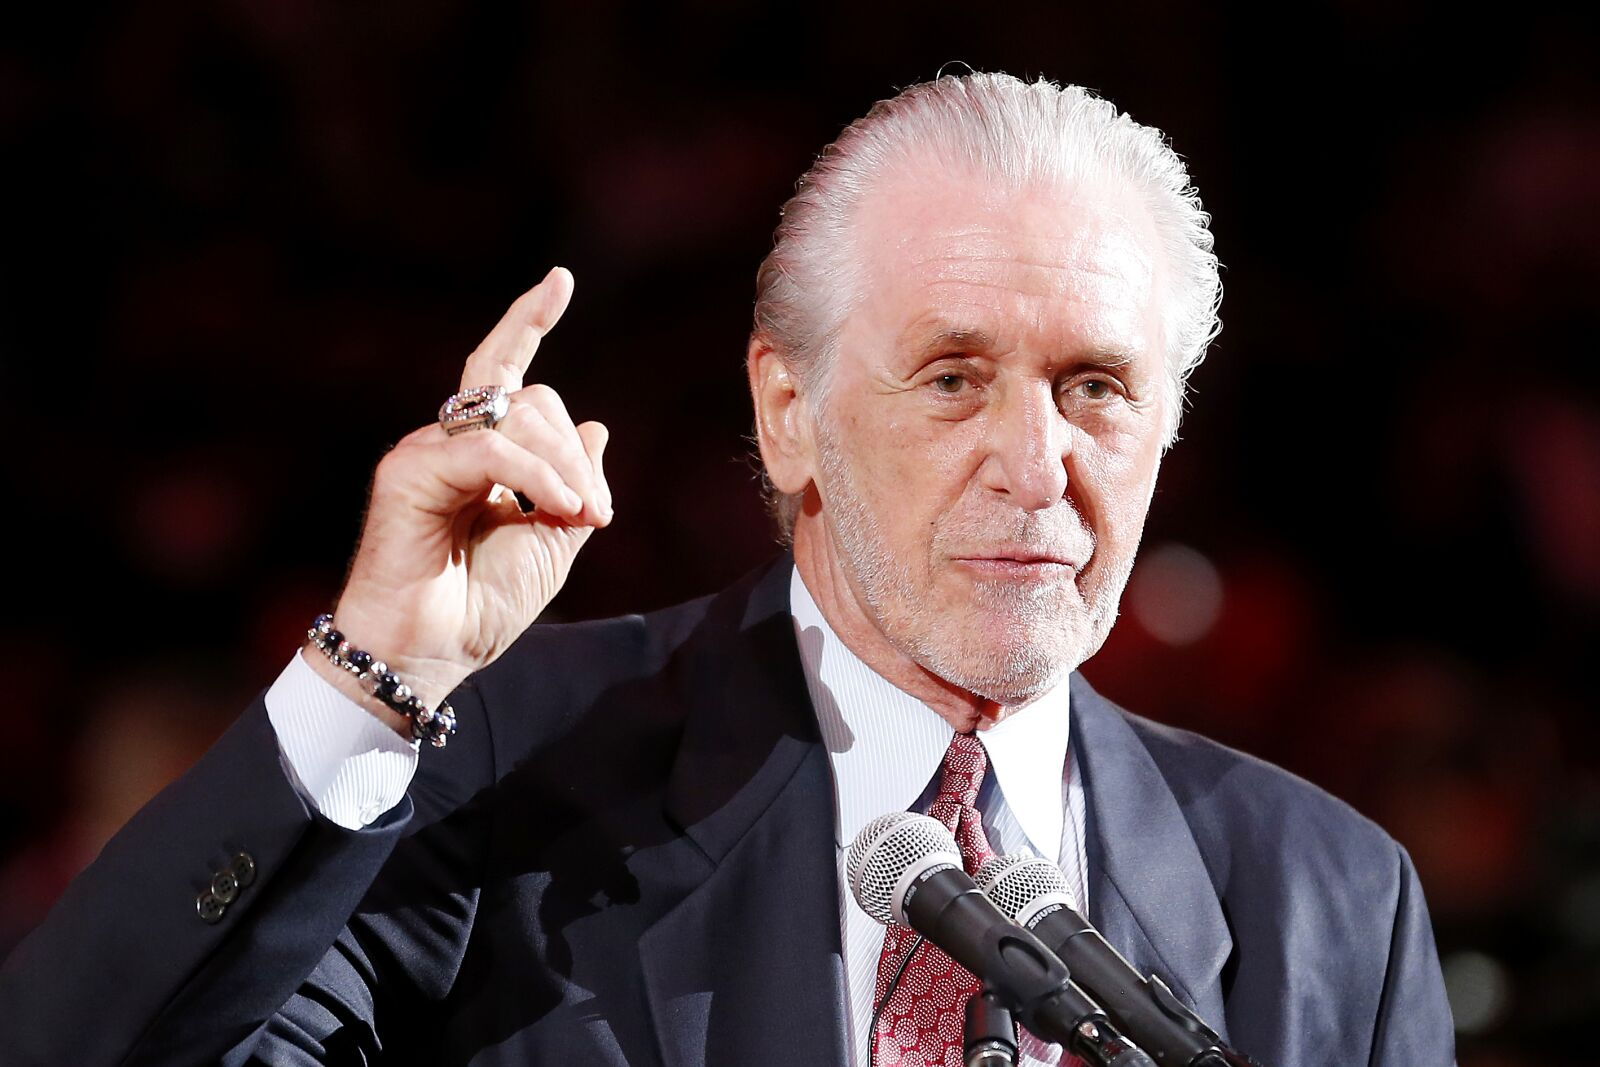 Miami Heat: New NBA signing and tampering rules takes aim at those like Riley